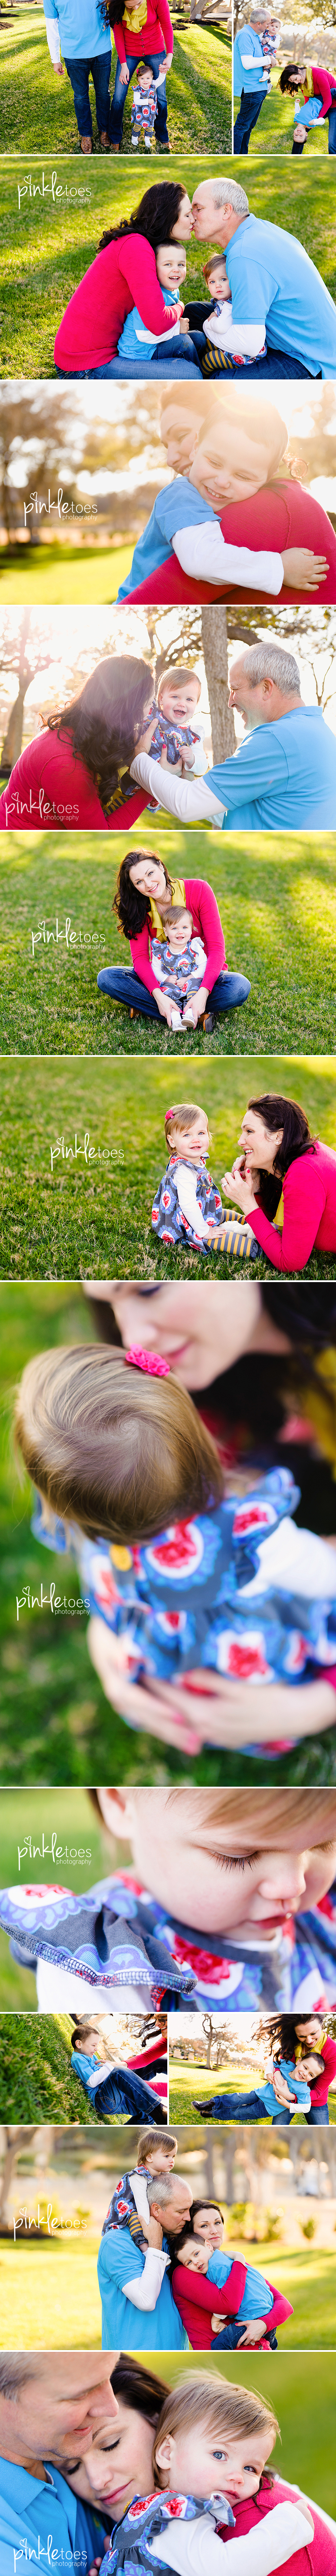 bk-austin-cedar-park-baby-kids-lifestyle-family-photographer